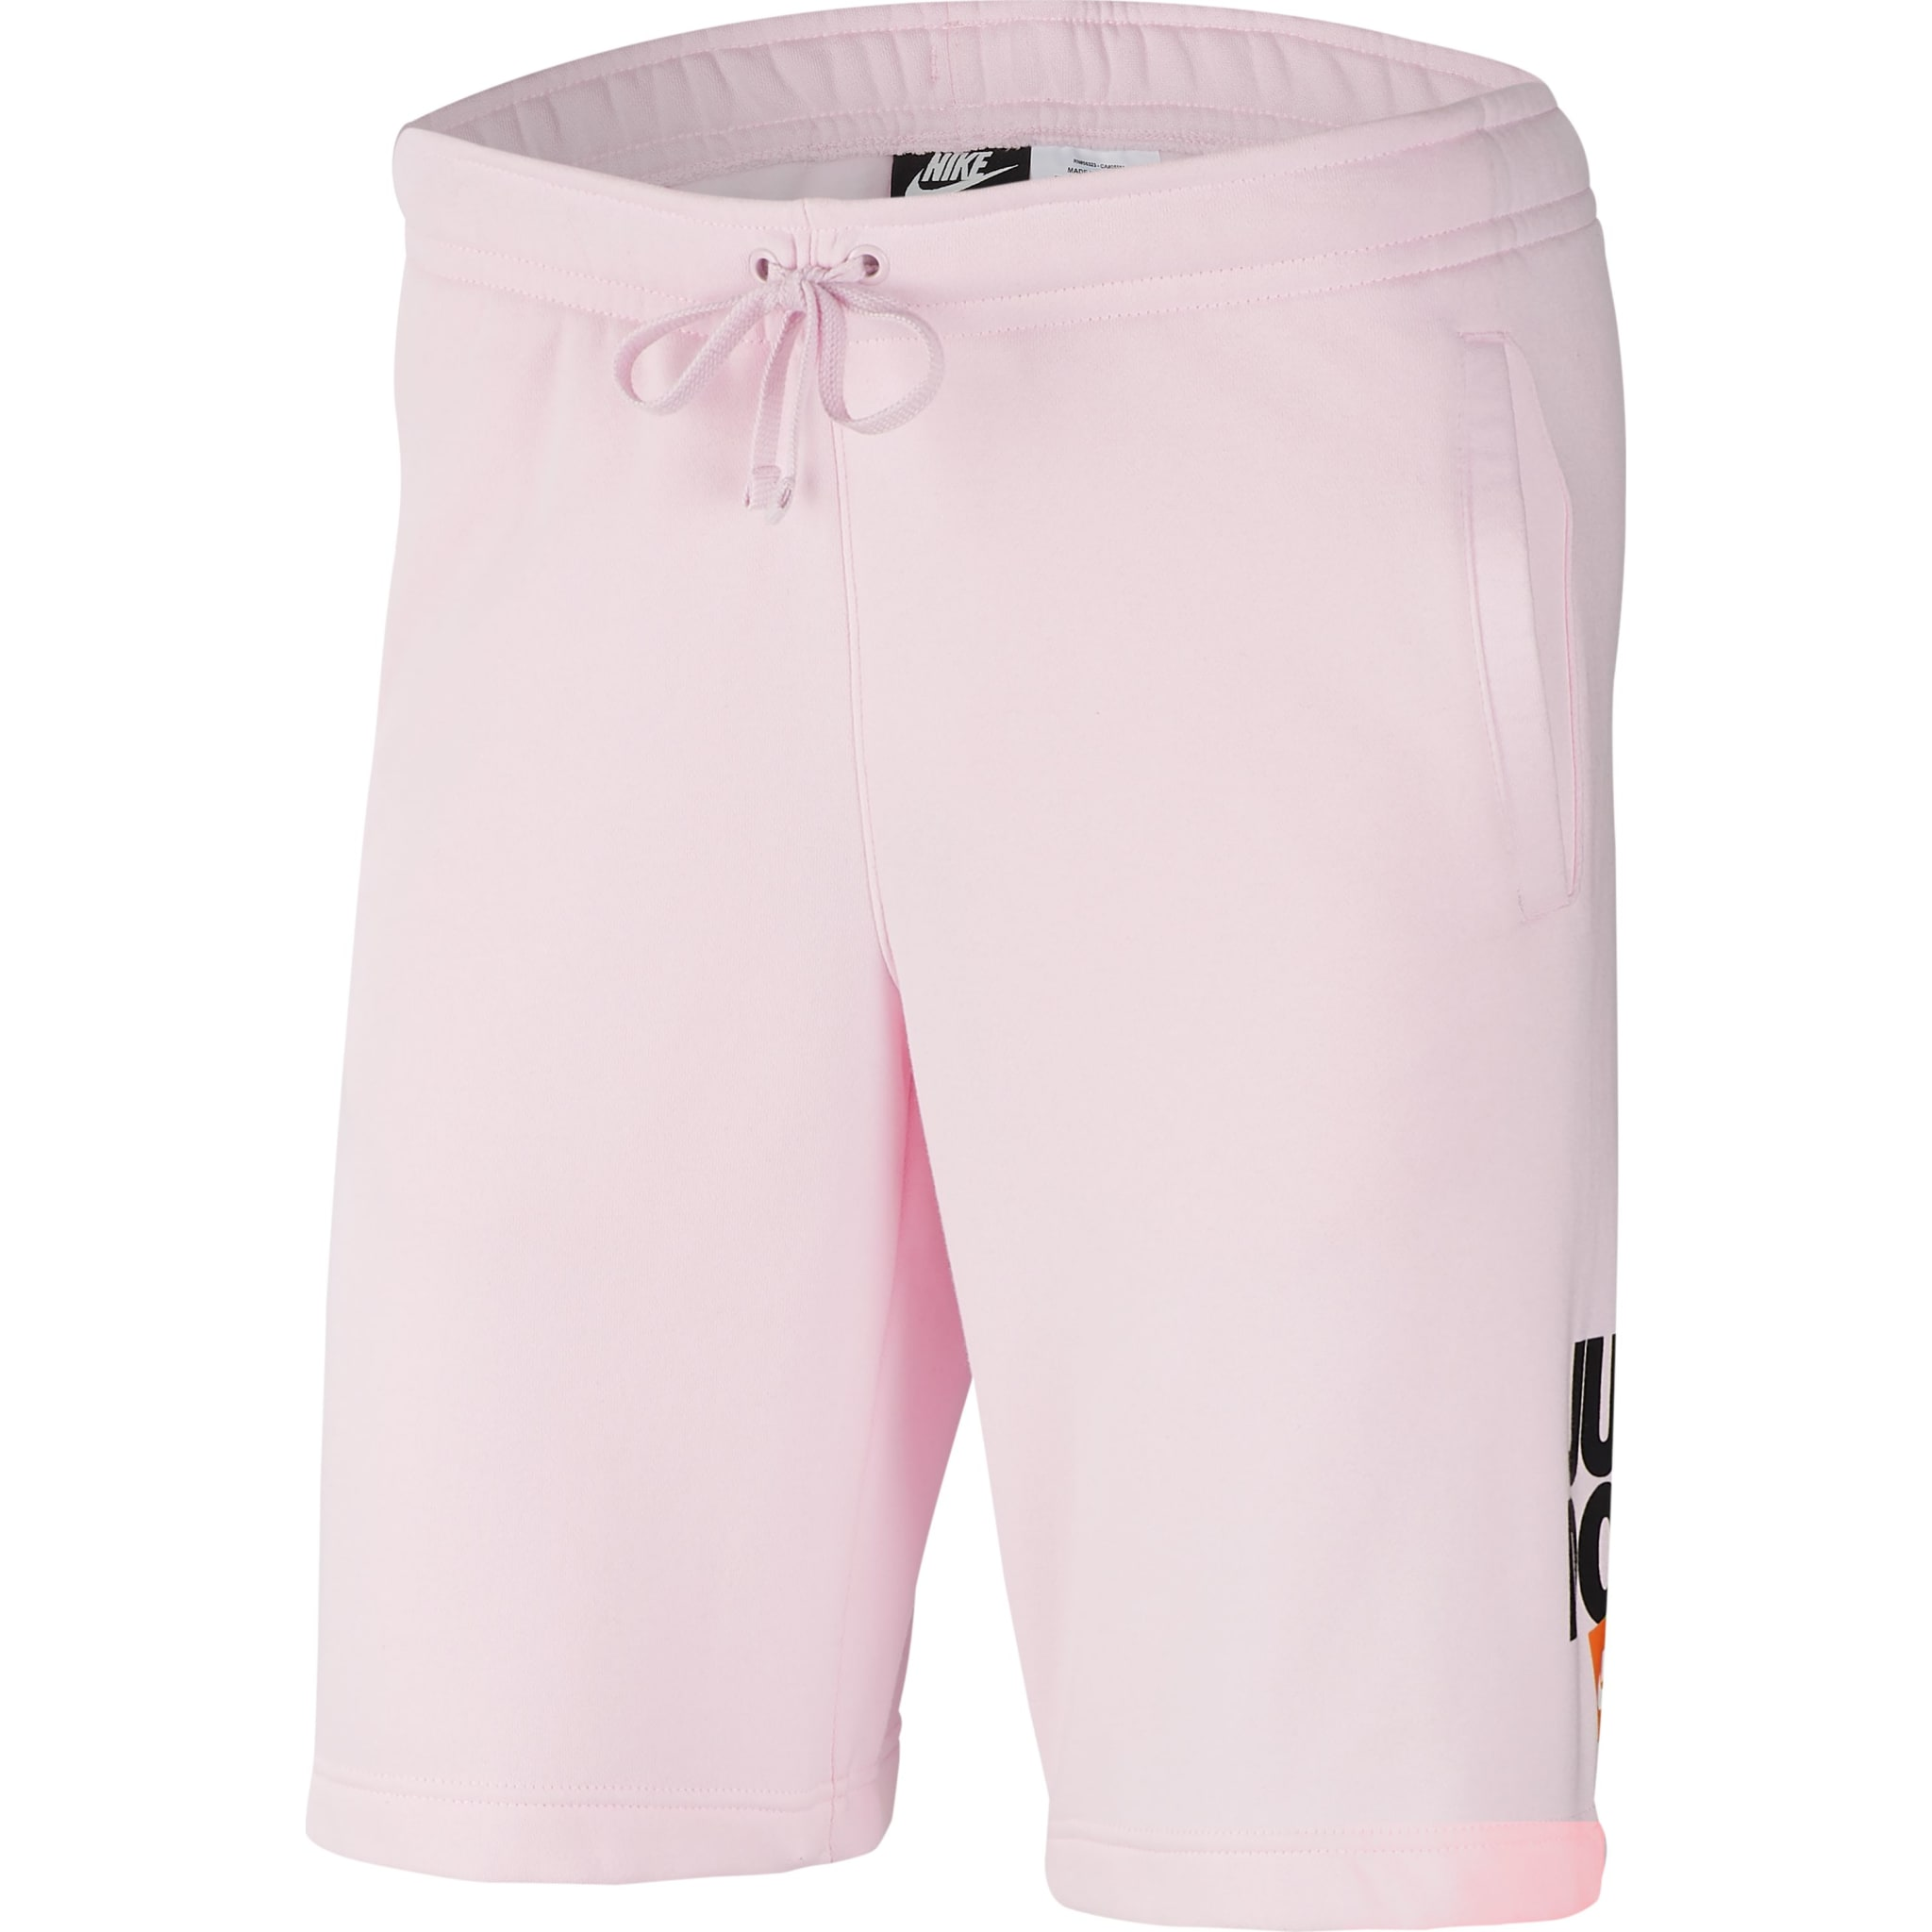 JDI Fleece Shorts